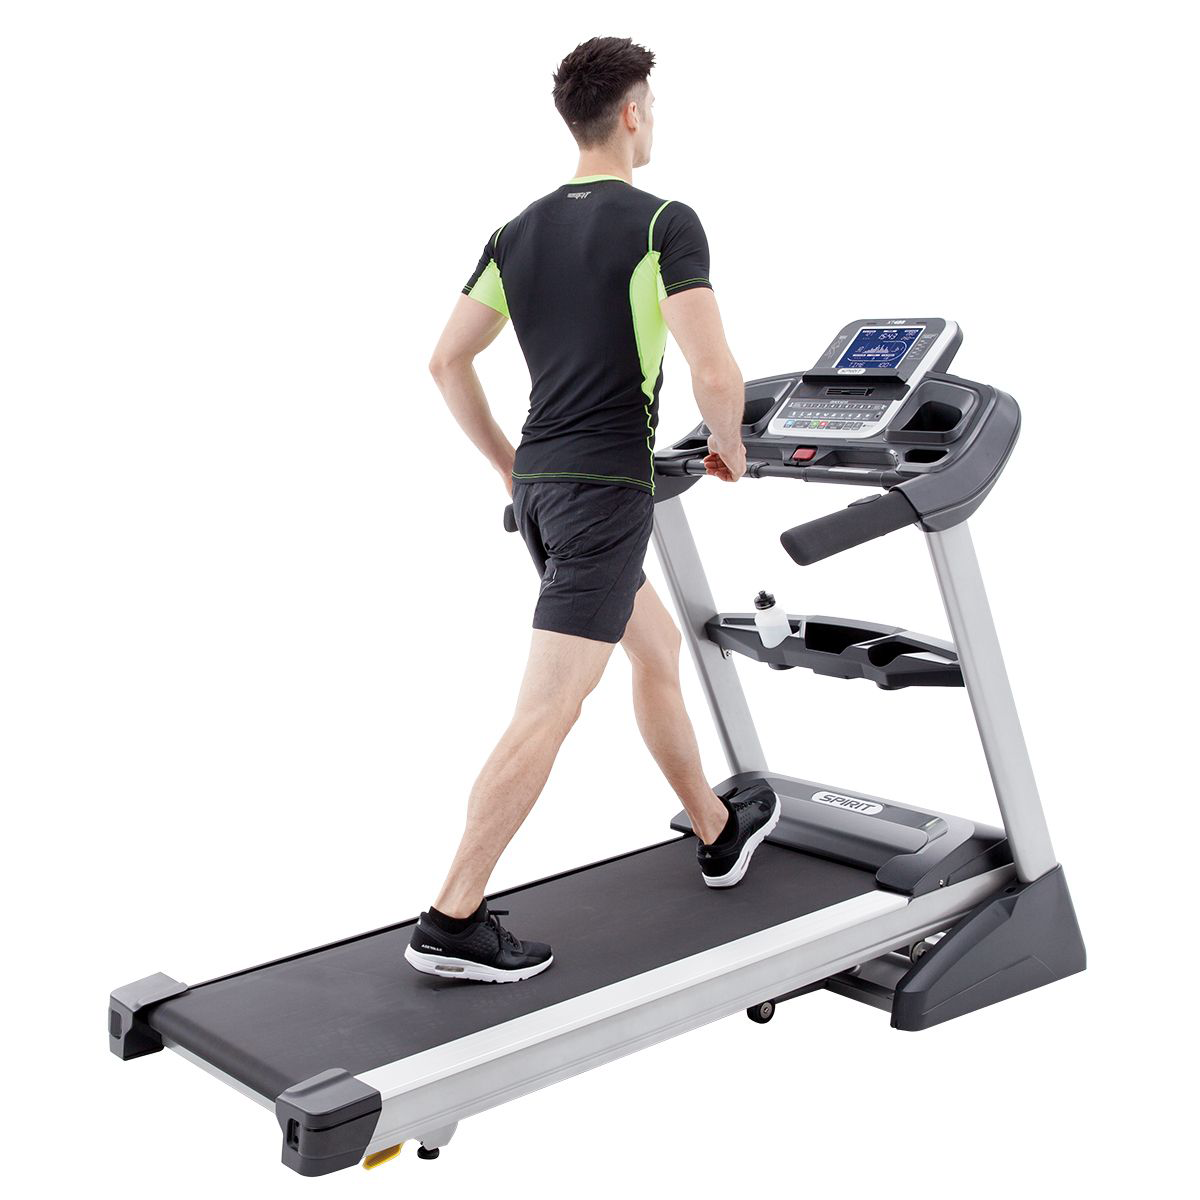 Right side/back/overhead view of the Spirit Fitness XT485 treadmill featuring a male model wearing black/green workout top and black shorts